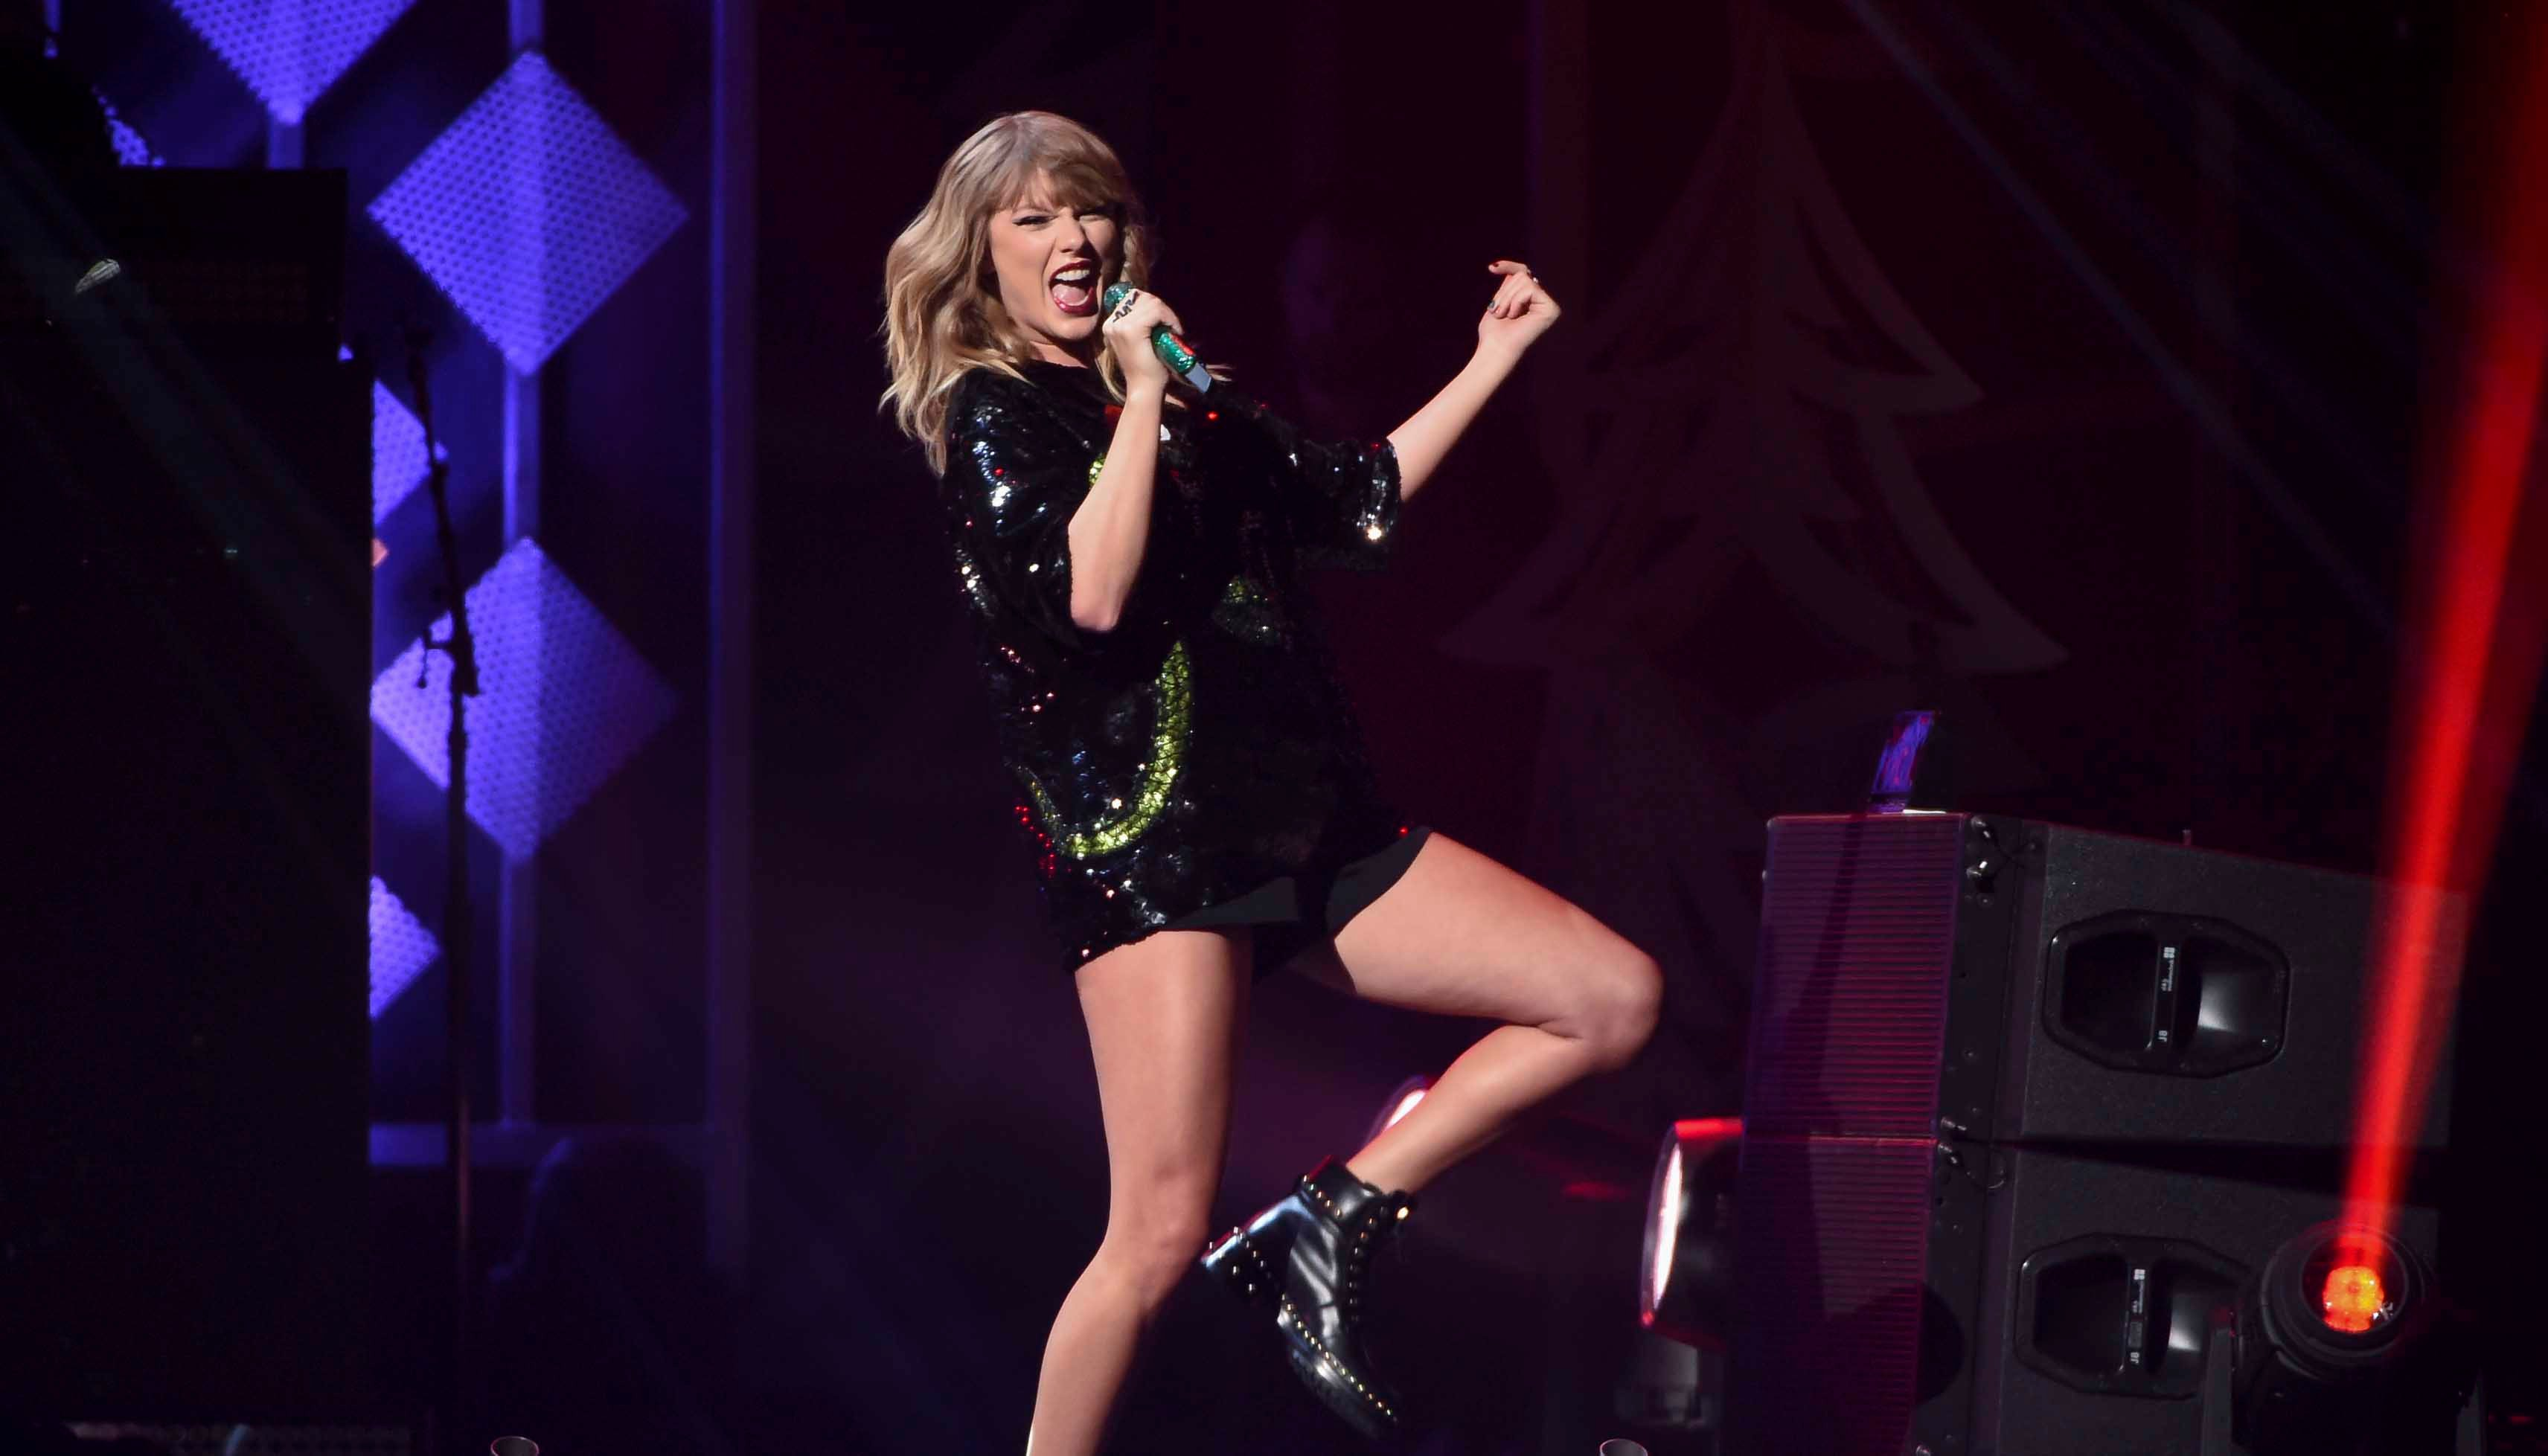 Police said a stalker broke into the New York City townhouse of Taylor Swift, seen here performing at Z100's iHeartRadio Jingle Ball on Friday, Dec. 8, 2017. (Photo by Evan Agostini/Invision/AP)